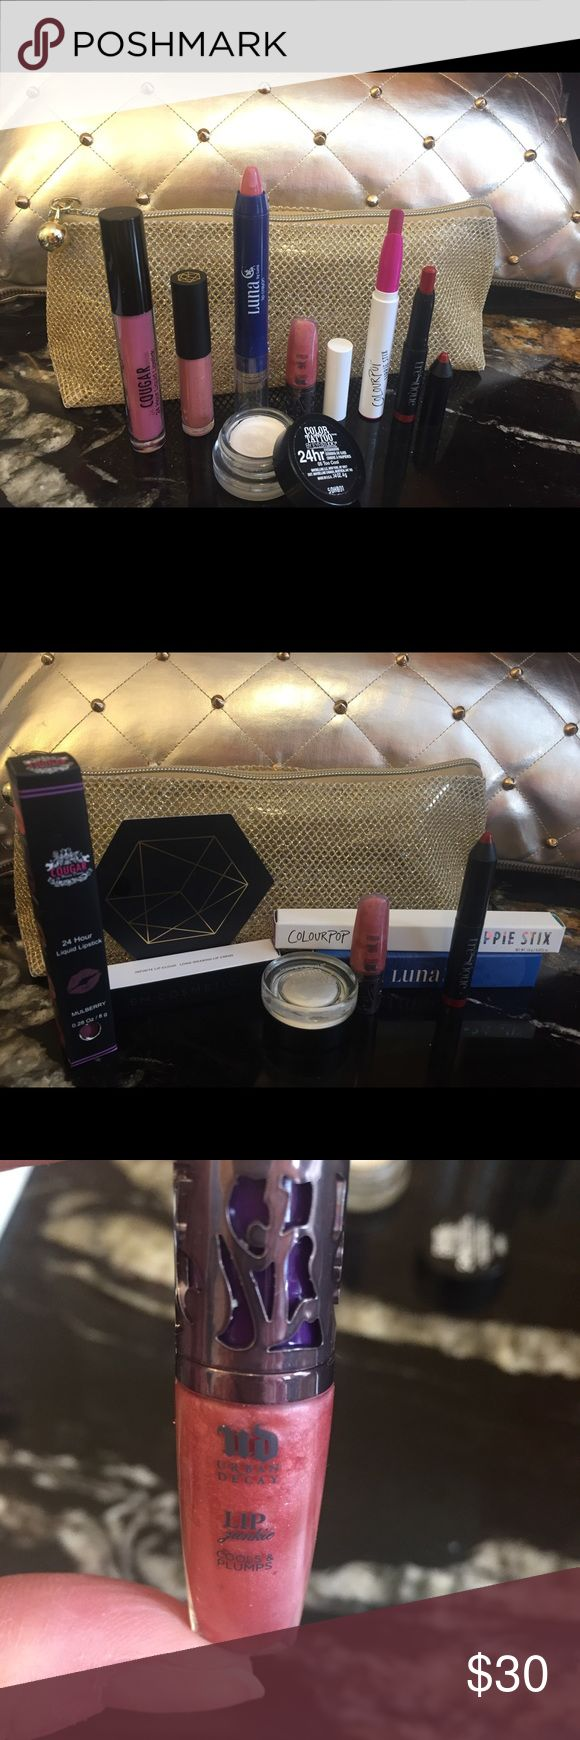 Makeup Bundle! ⭐️Urban Decay, Colorpop Lip Bundle! Beautiful Lip Bundle with Gorgeous gold glitter makeup bag! ⭐️⭐️ One Maybelline Color Tattoo Eye Shadow in Too Cool, slightly used.   NWT: Urban Decay, factory sealed mini Lip Junkie in Naked; Cougar 24 Hour Liquid Lipstick in Mulberry full size; EM Cosmetics Infinite Lip Cloud Long Wearing Lip Creme in Rose Nude travel size.   Swatched but never used: Colorpop Lippie Stix in Matte X full size; Luna Lip Crayon in Elara full size; trèStique…